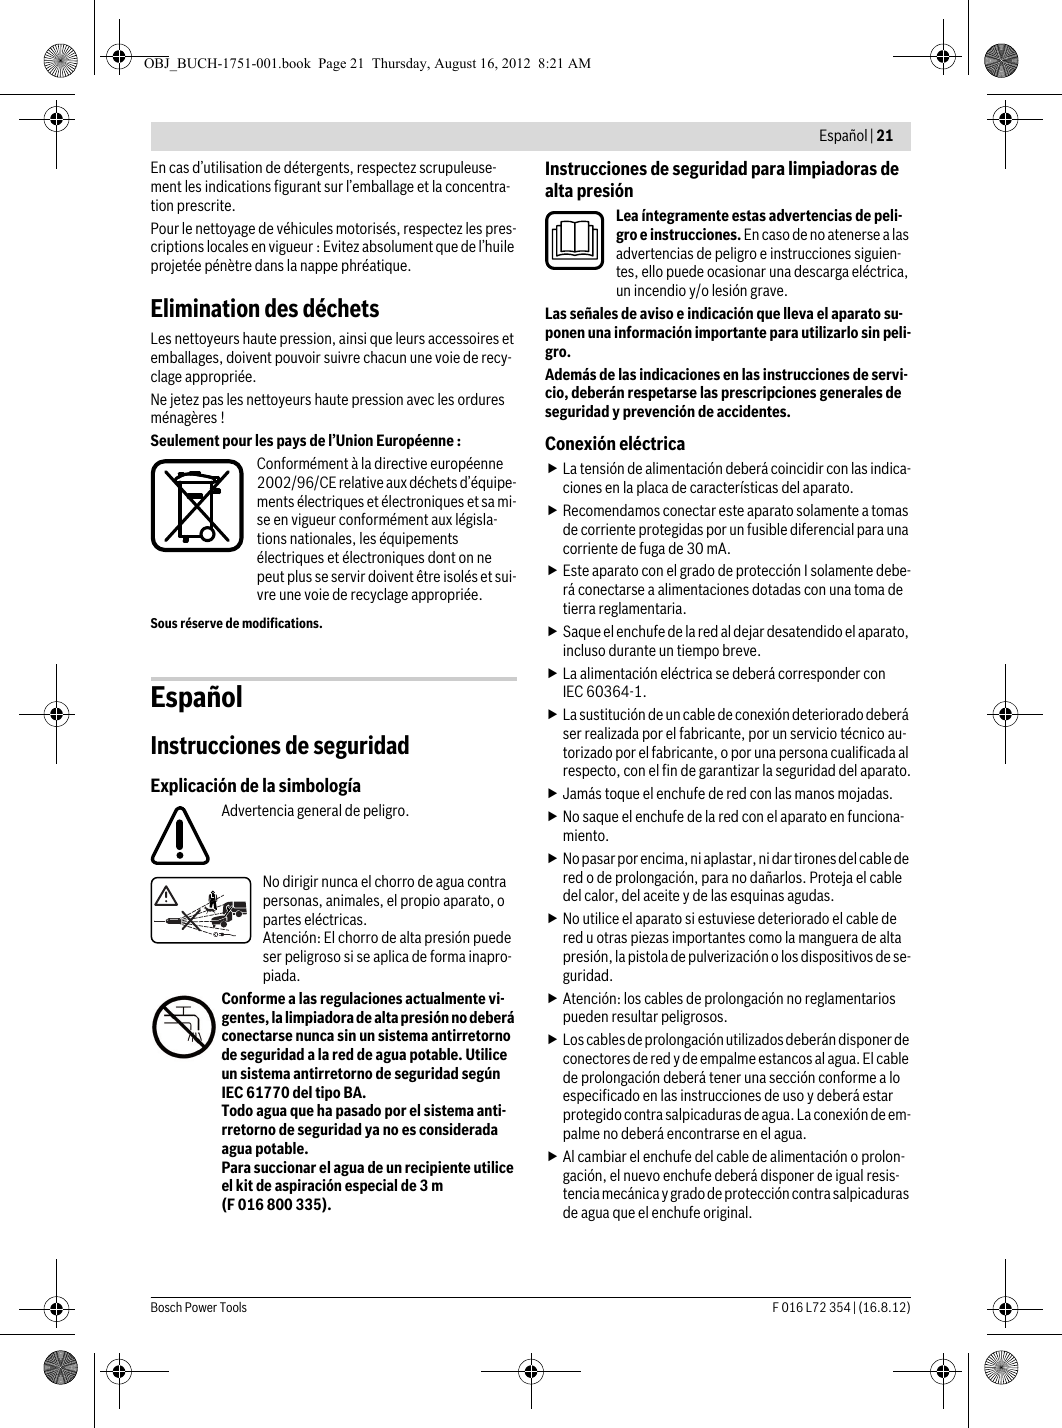 InstructionD B175Cf4687B9944Fd2D8Fdde78 User Guide Page 21